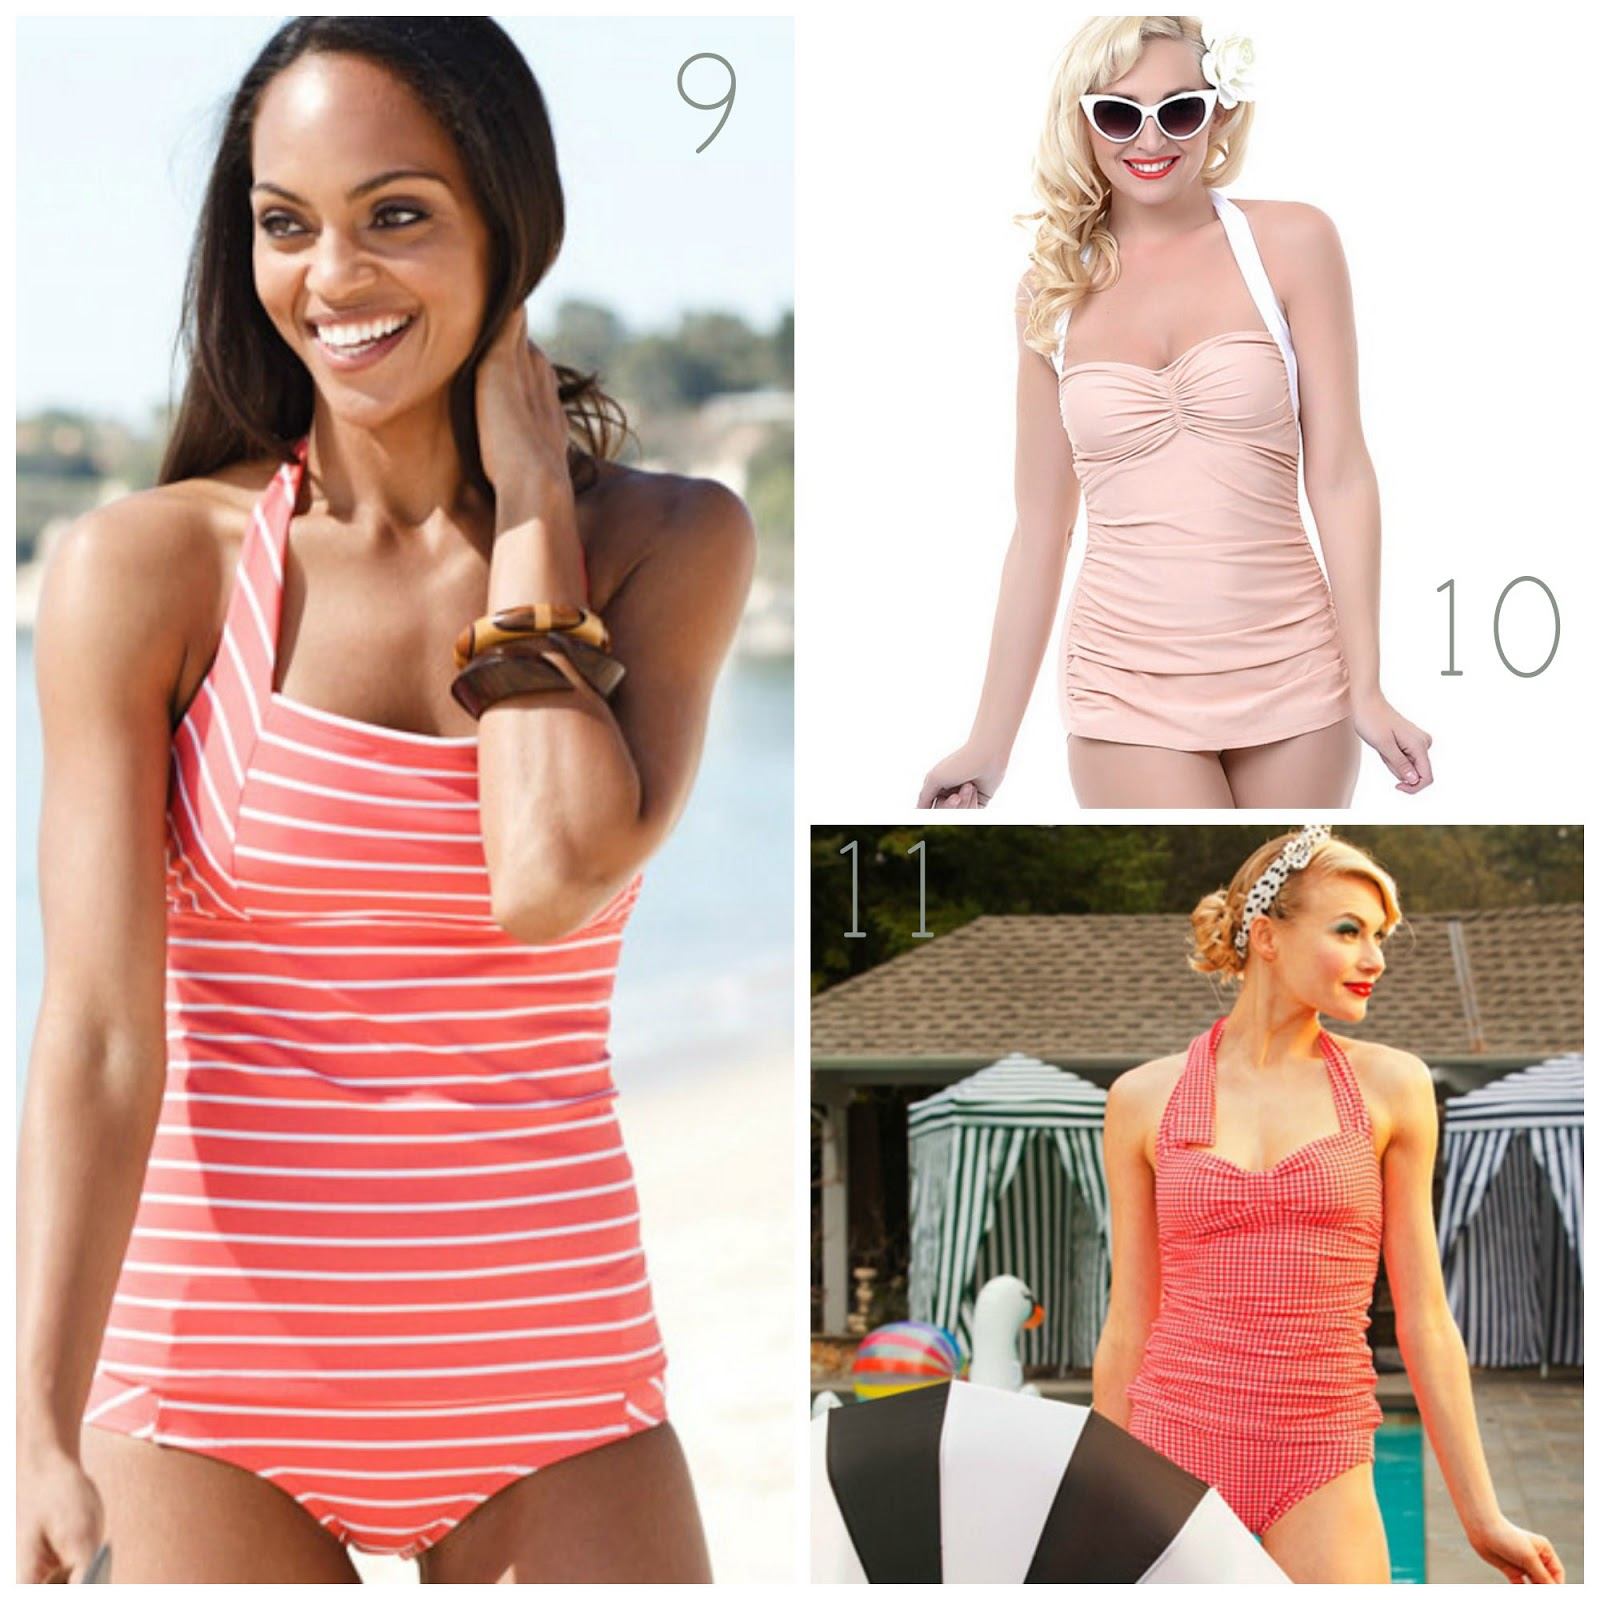 Star Haus Modest Swim Guide Summer 2013 A Stylish And